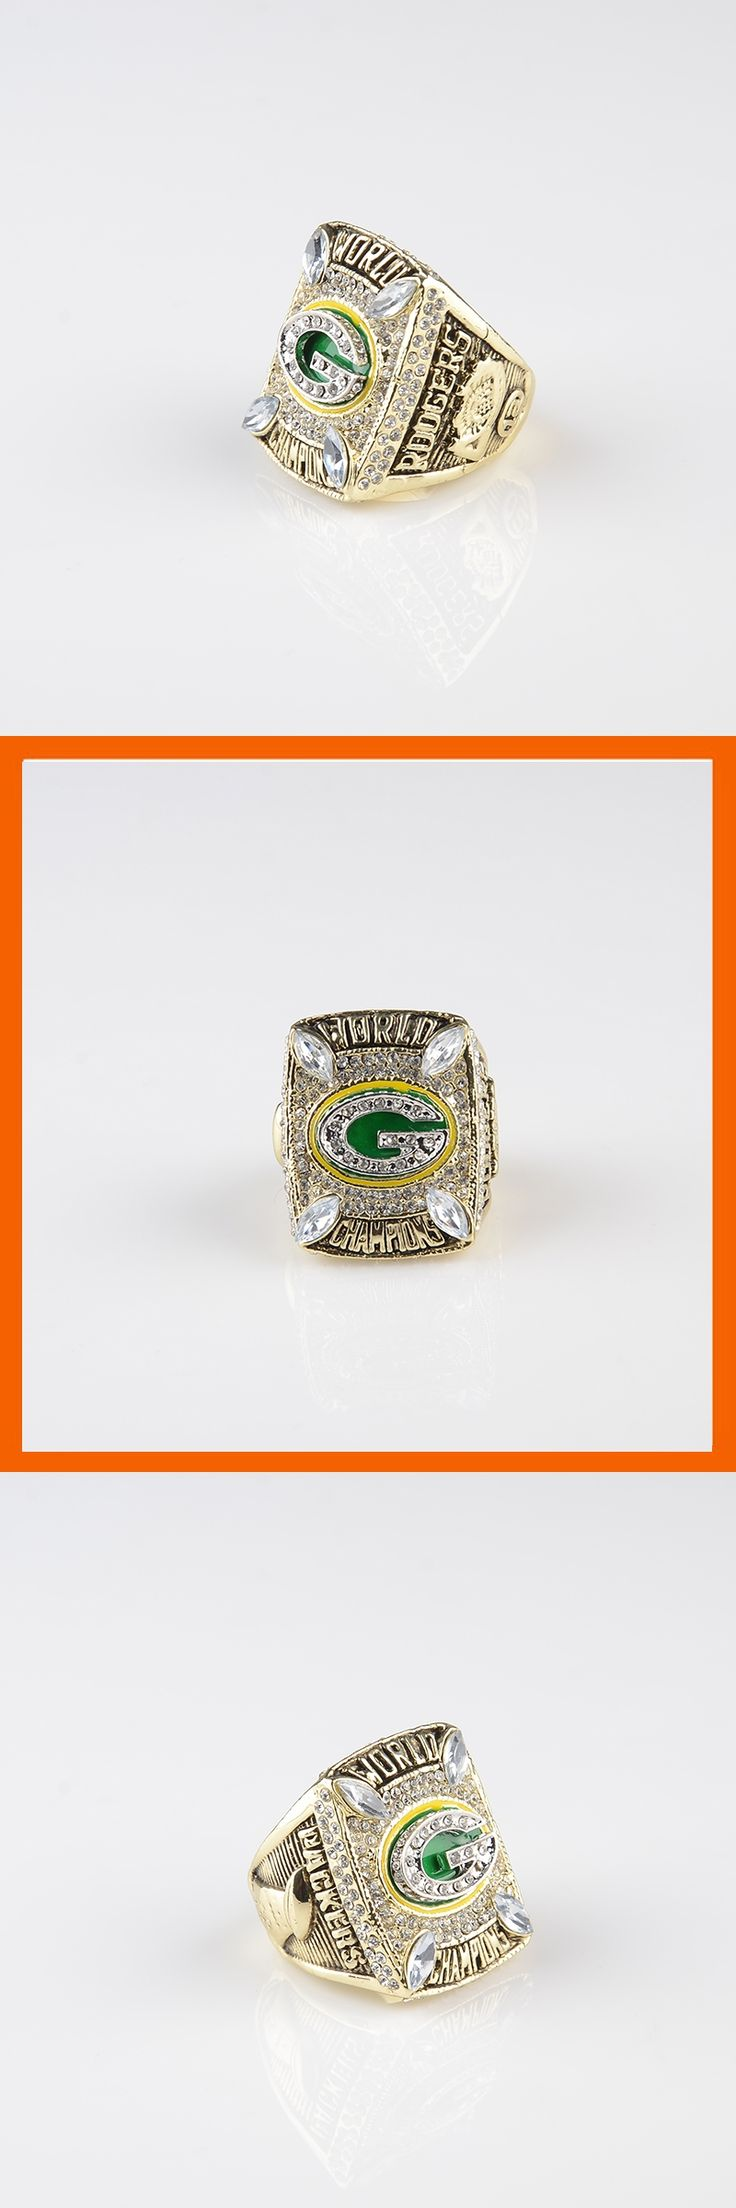 2010 GREEN BAY PACKERS SUPER BOWL XLV WORLD CHAMPIONSHIP RING  US SIZE 8 9 10 11 12 13 AVAILABLE